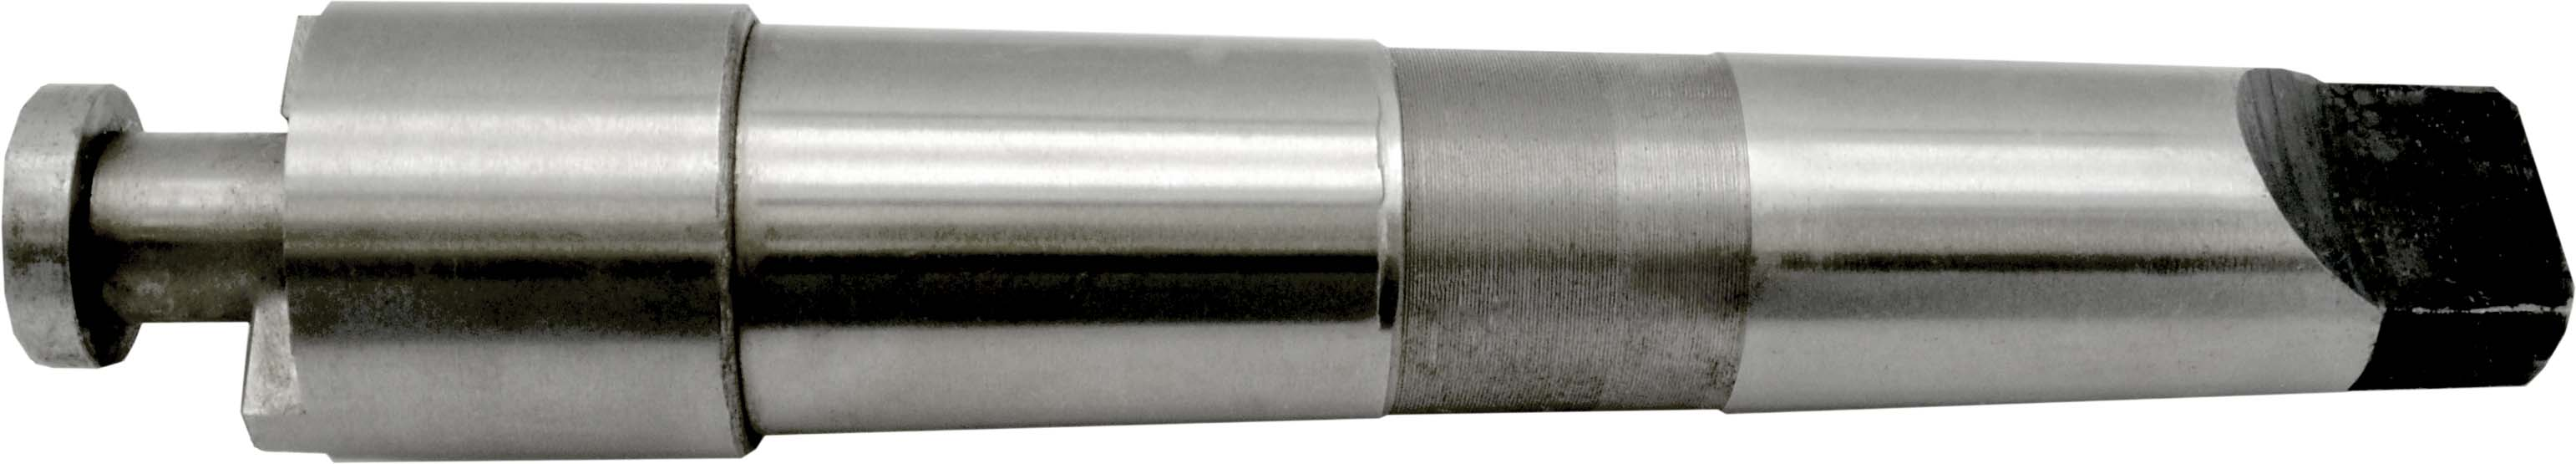 """with Drawbar End Brown /& Sharpe Taper Shank 7-3//16/"""" End Mill Holder Style B"""